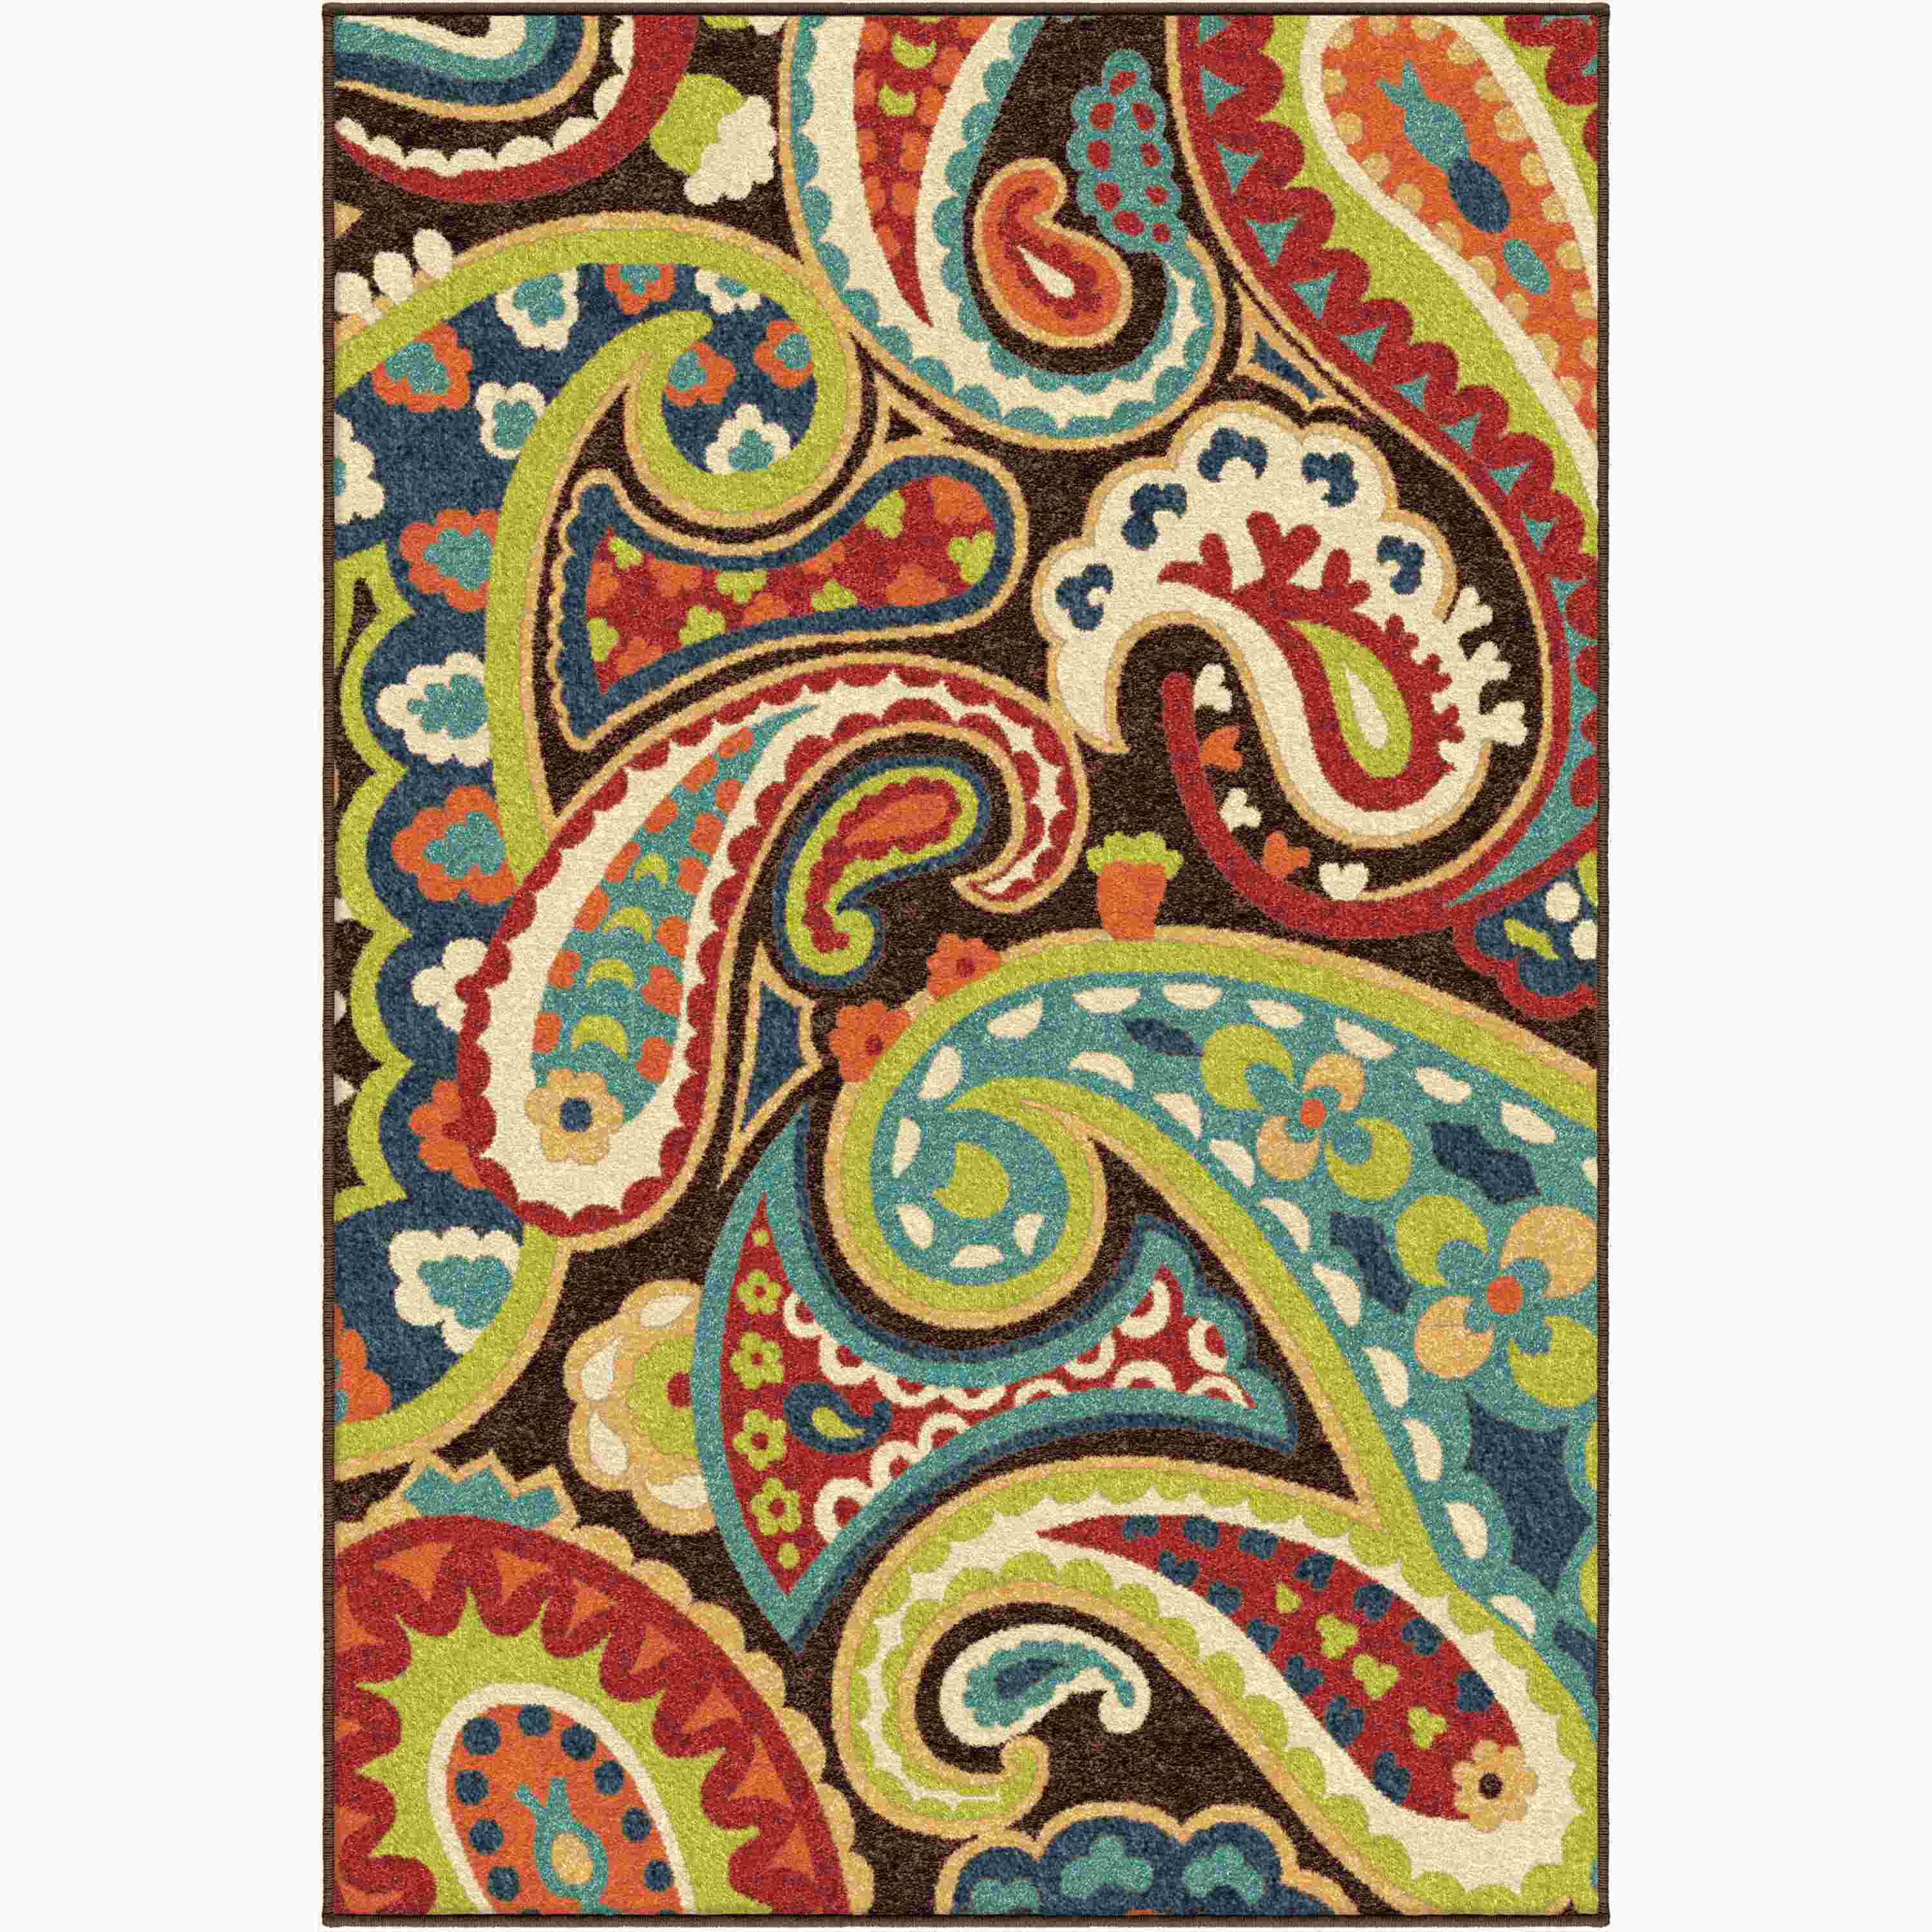 Orian Rugs Indoor/Outdoor Paisley Paisley Multi Area Rug